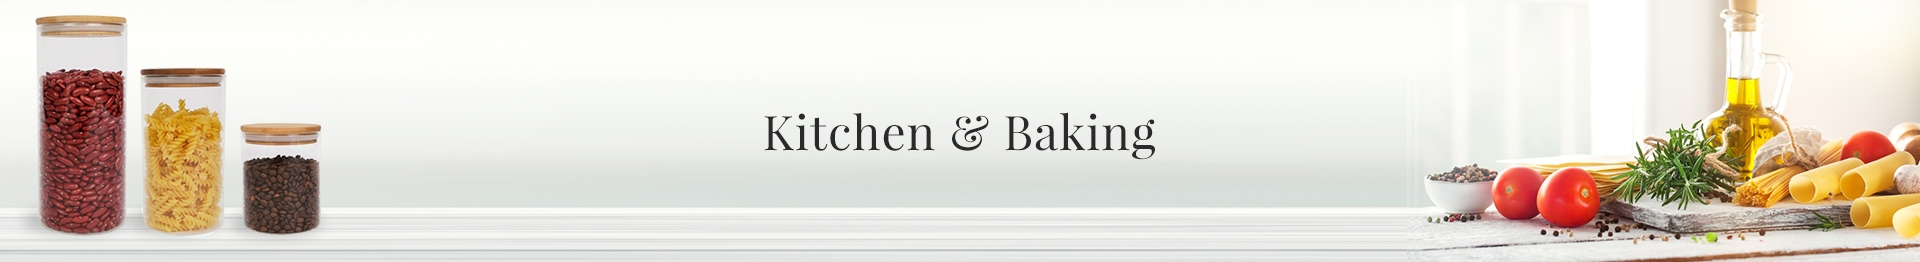 Kitchen & Baking